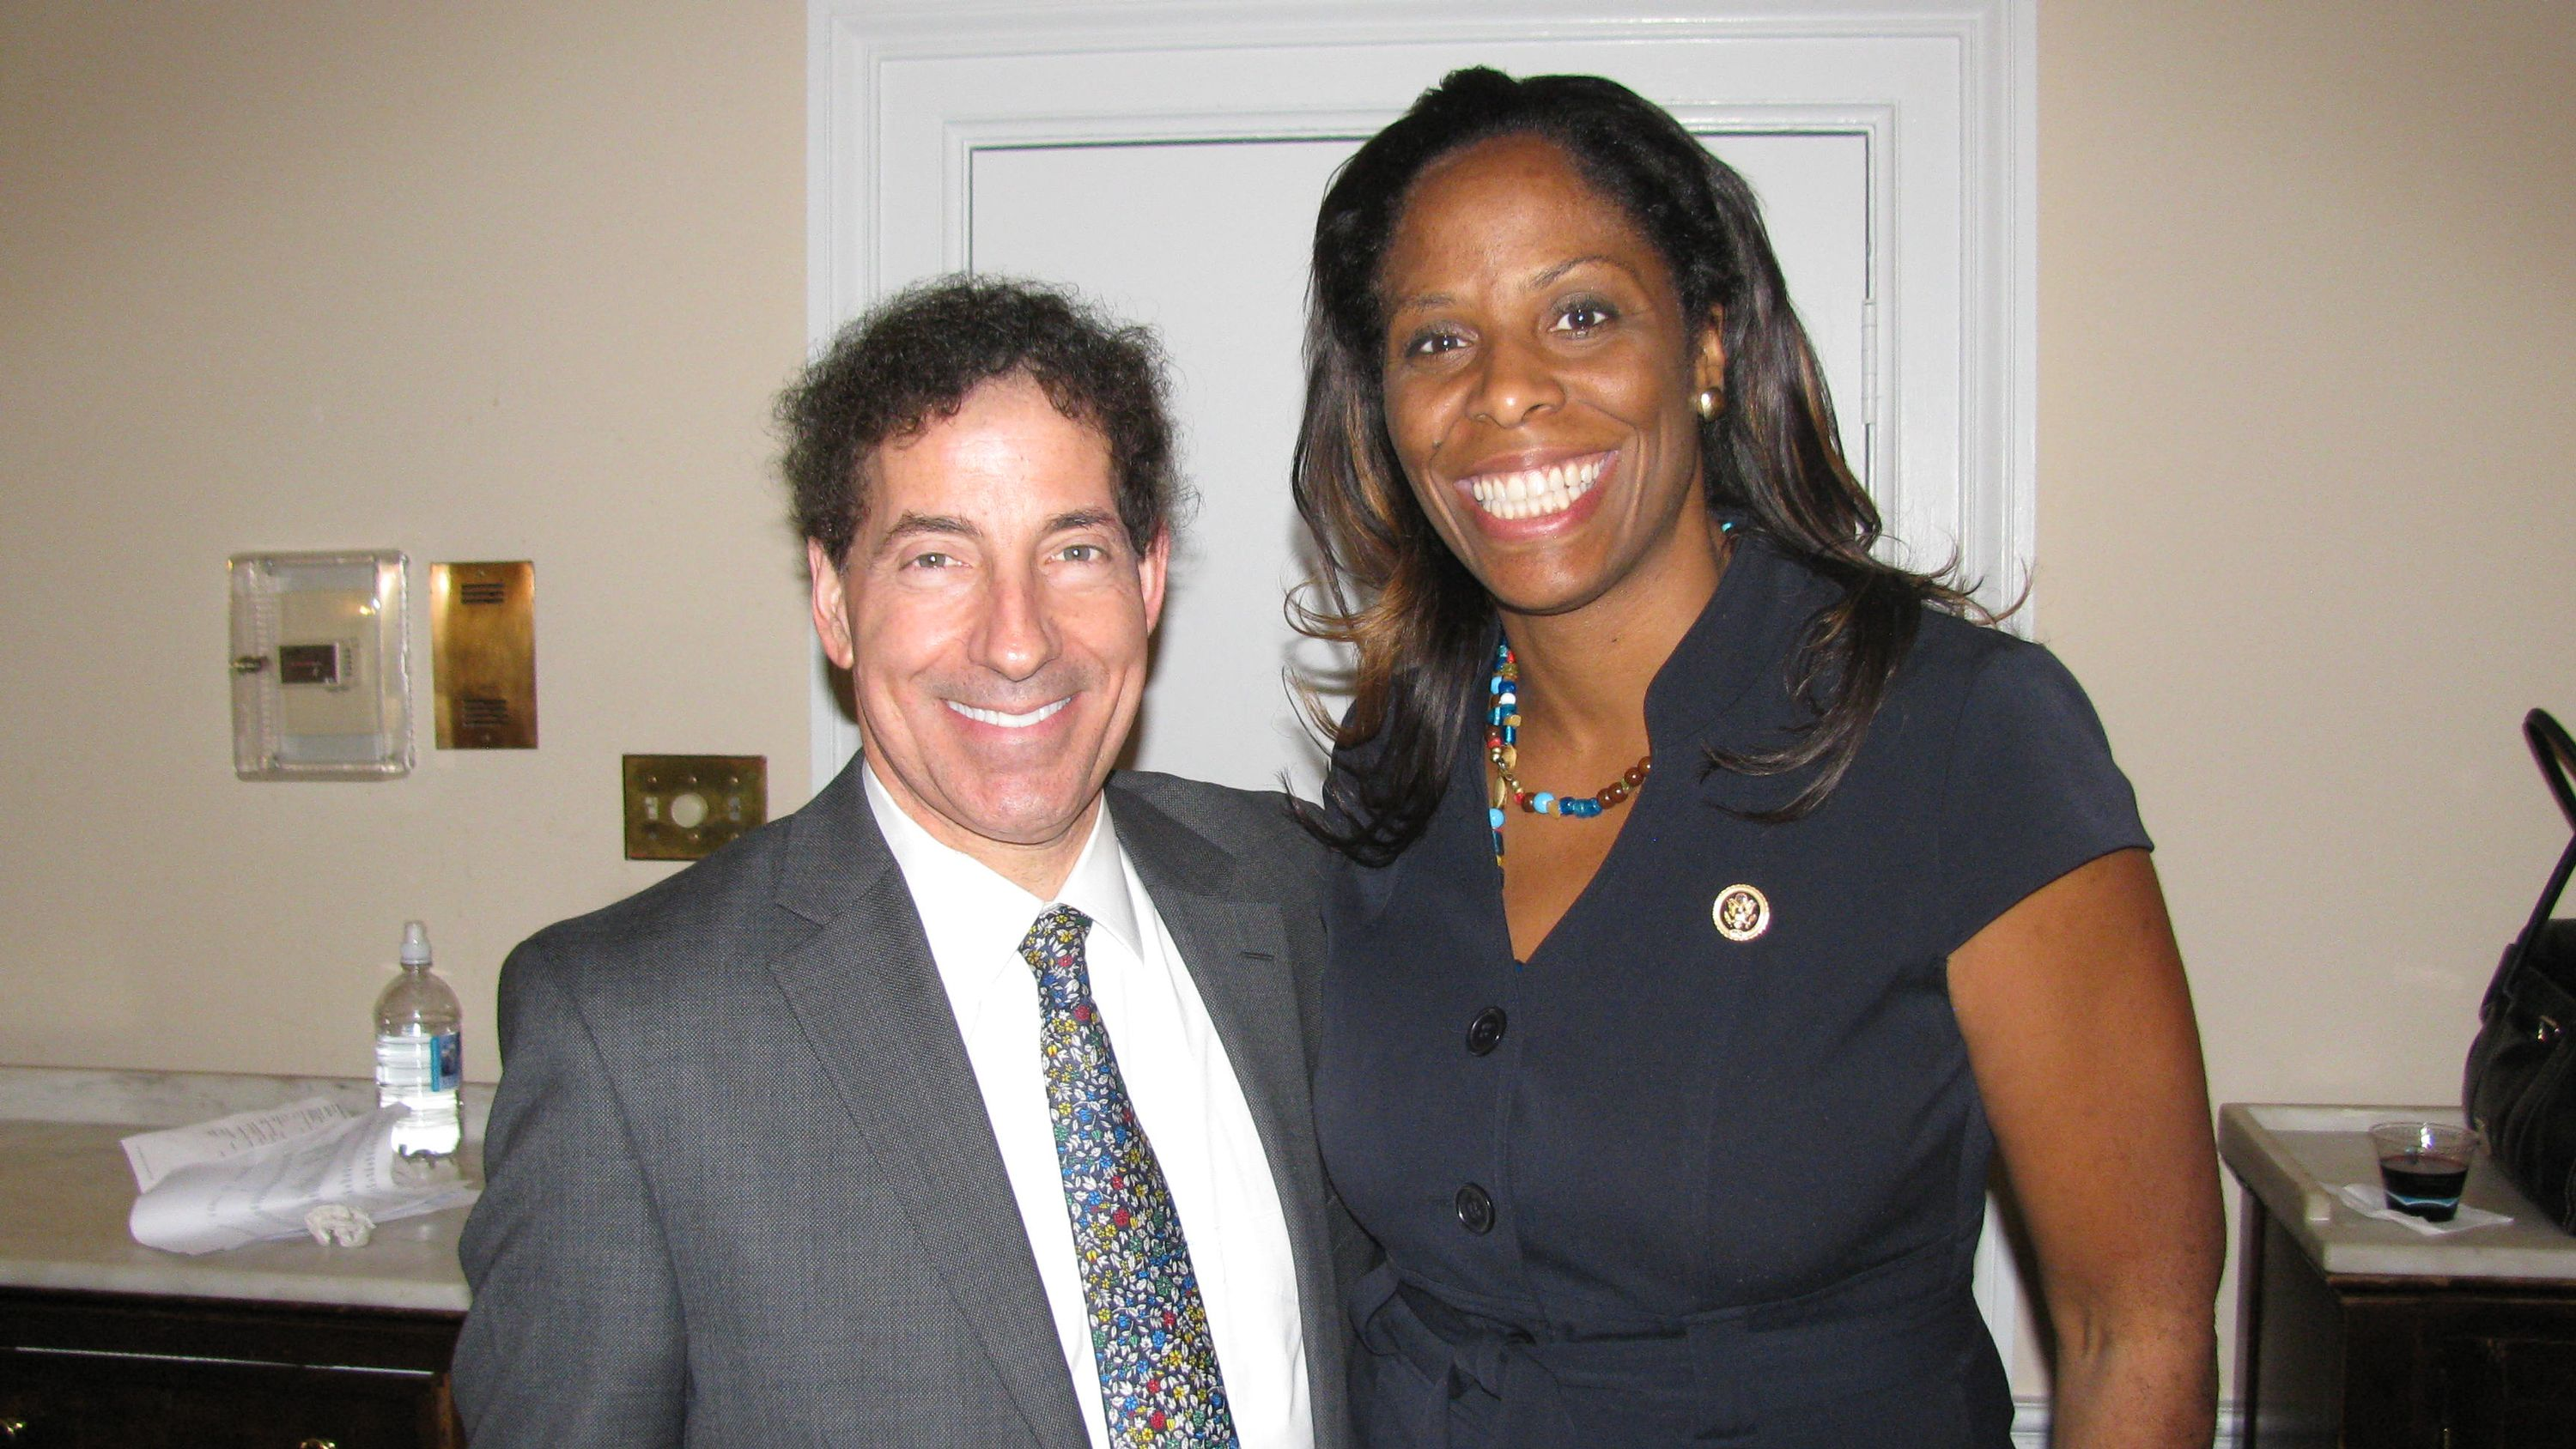 Jamie Raskin and Stacey Plaskett